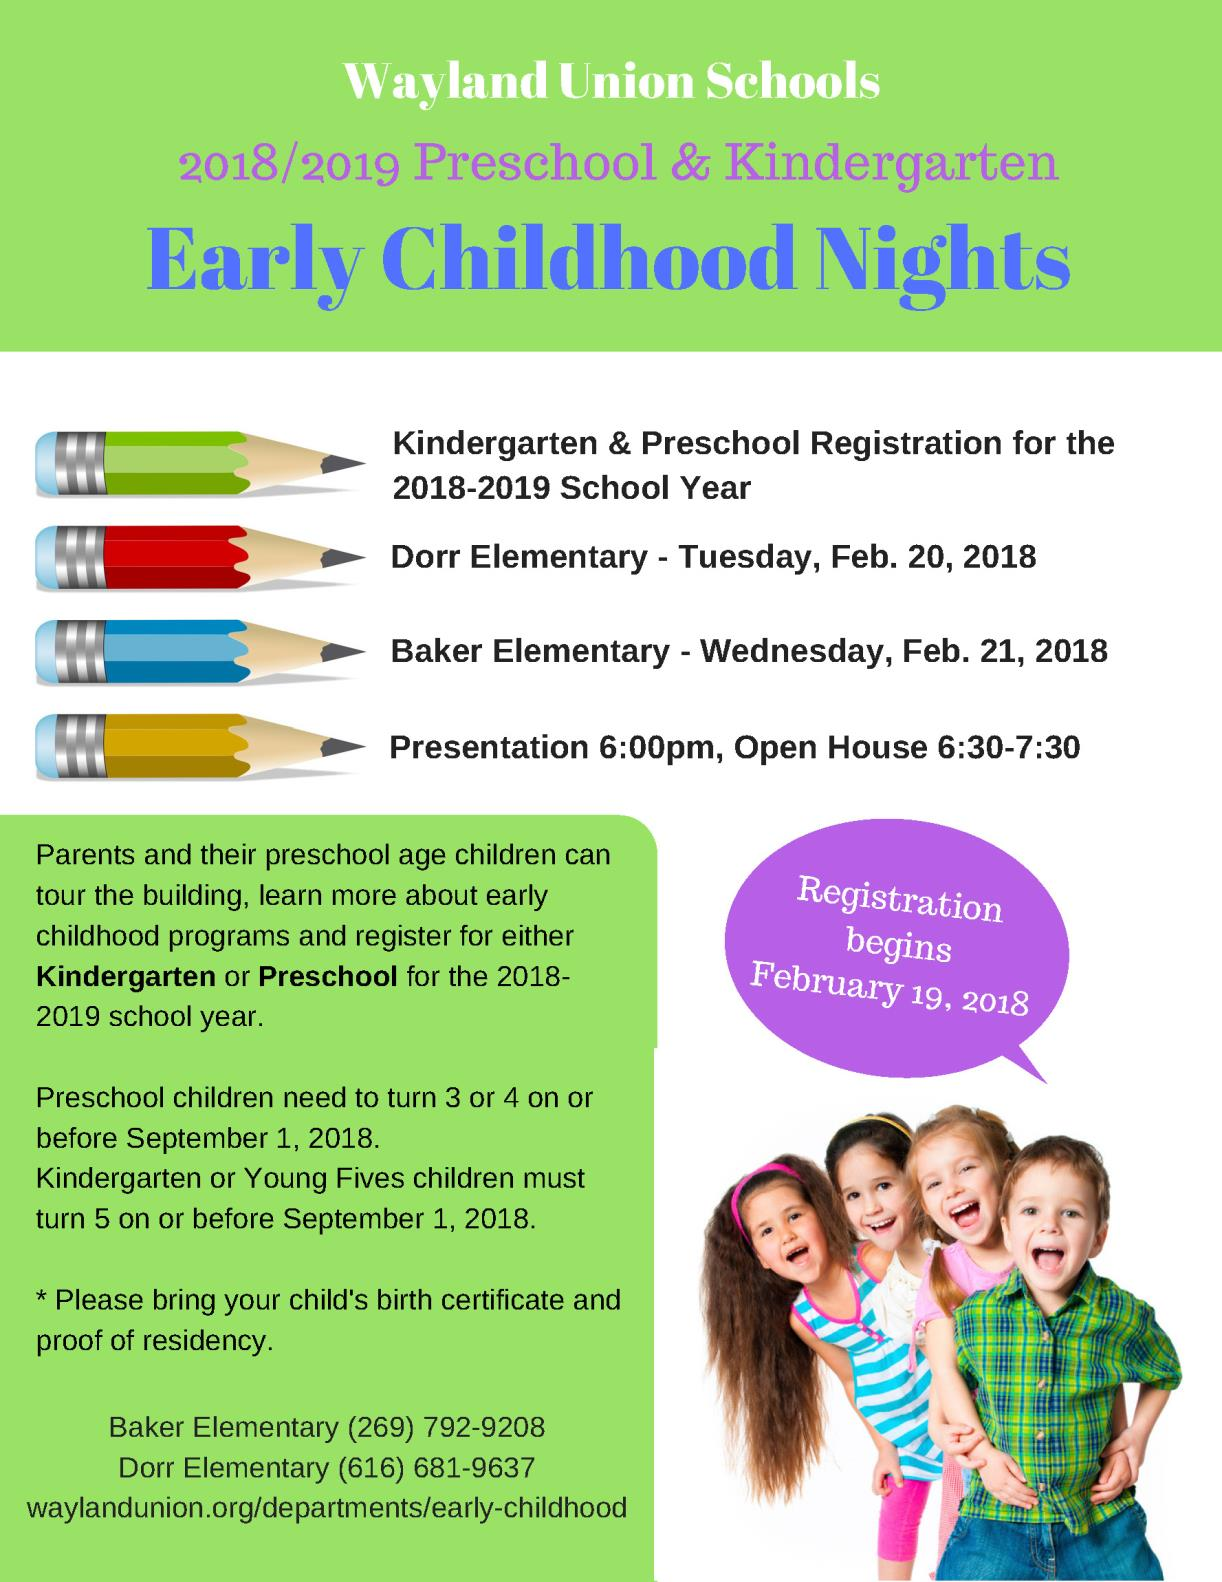 flyer for early childhood nights